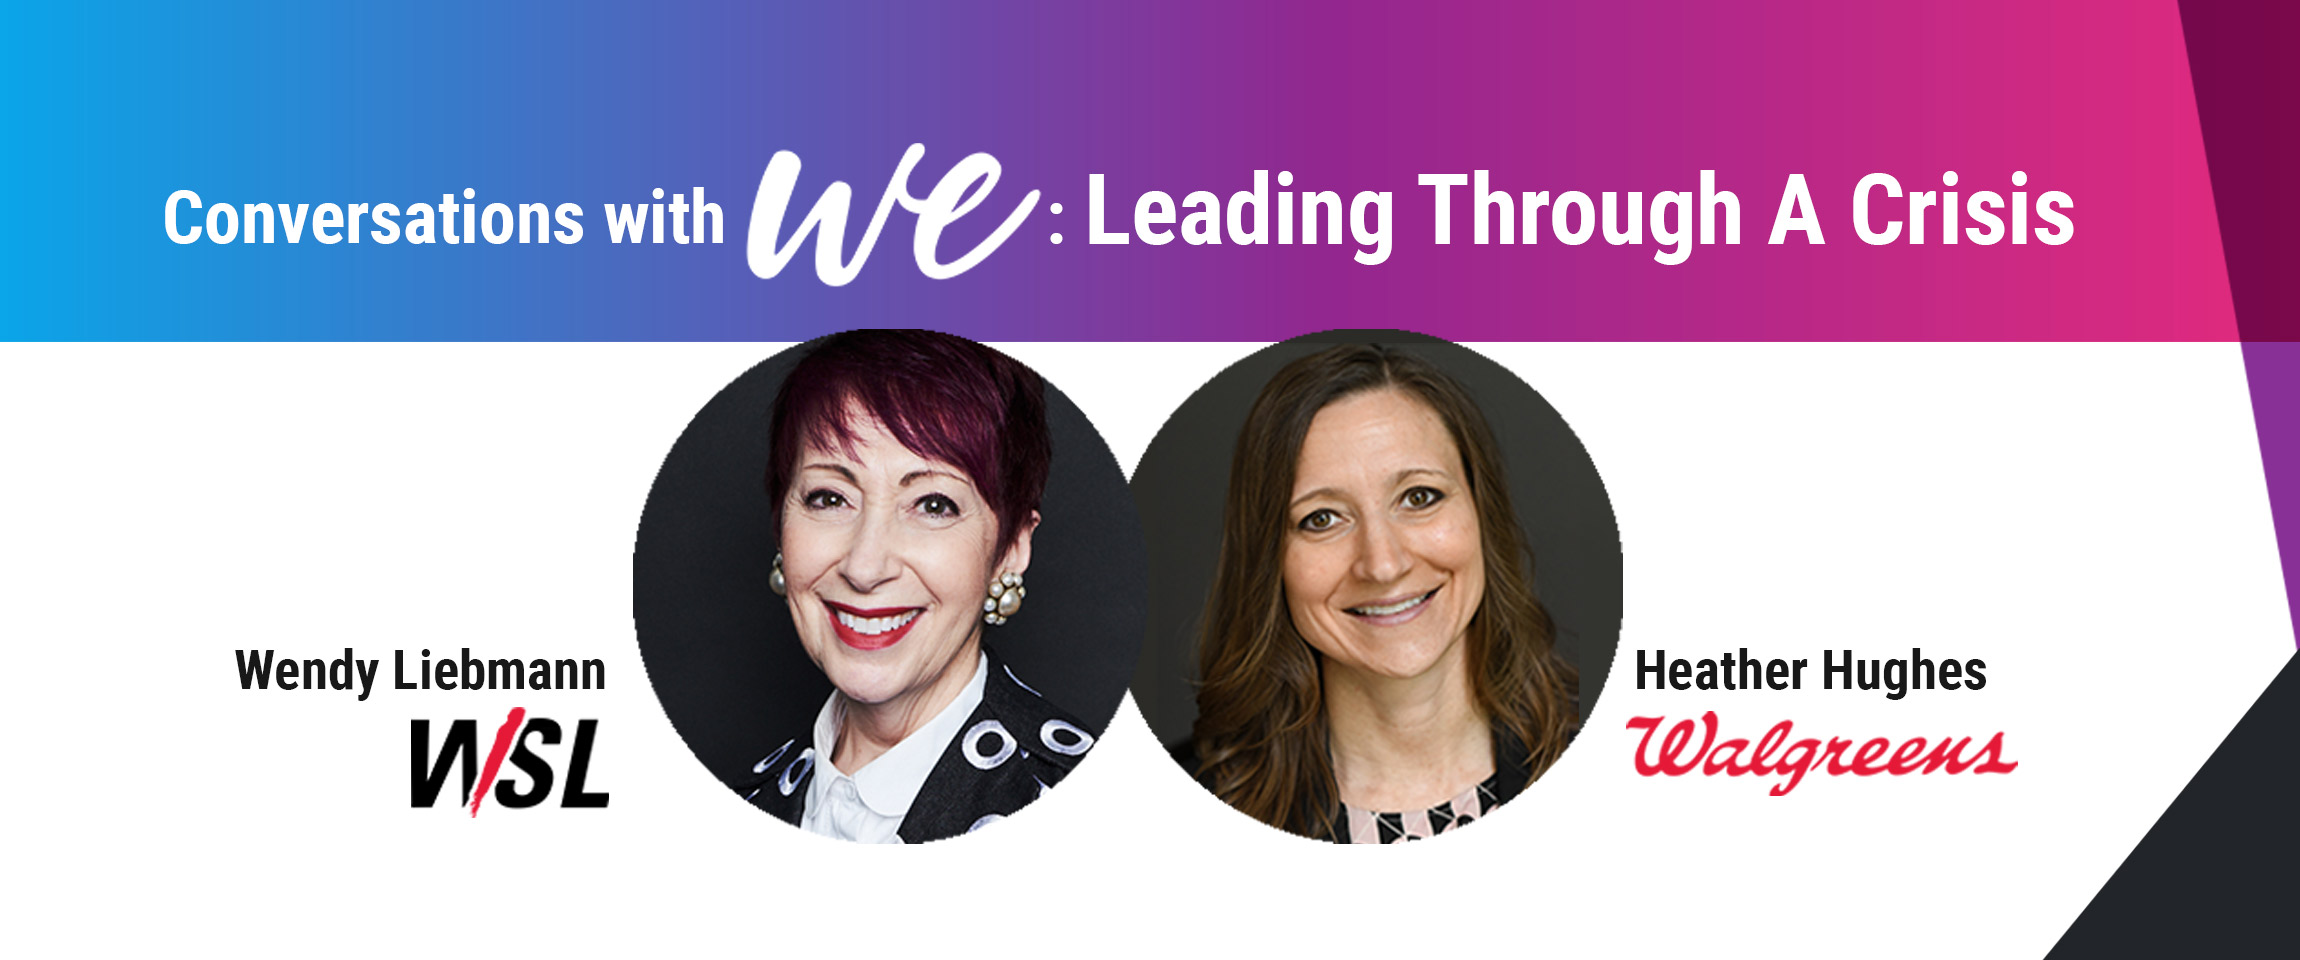 Conversations with WE: Leading Through a Crisis - LIVE CHAT